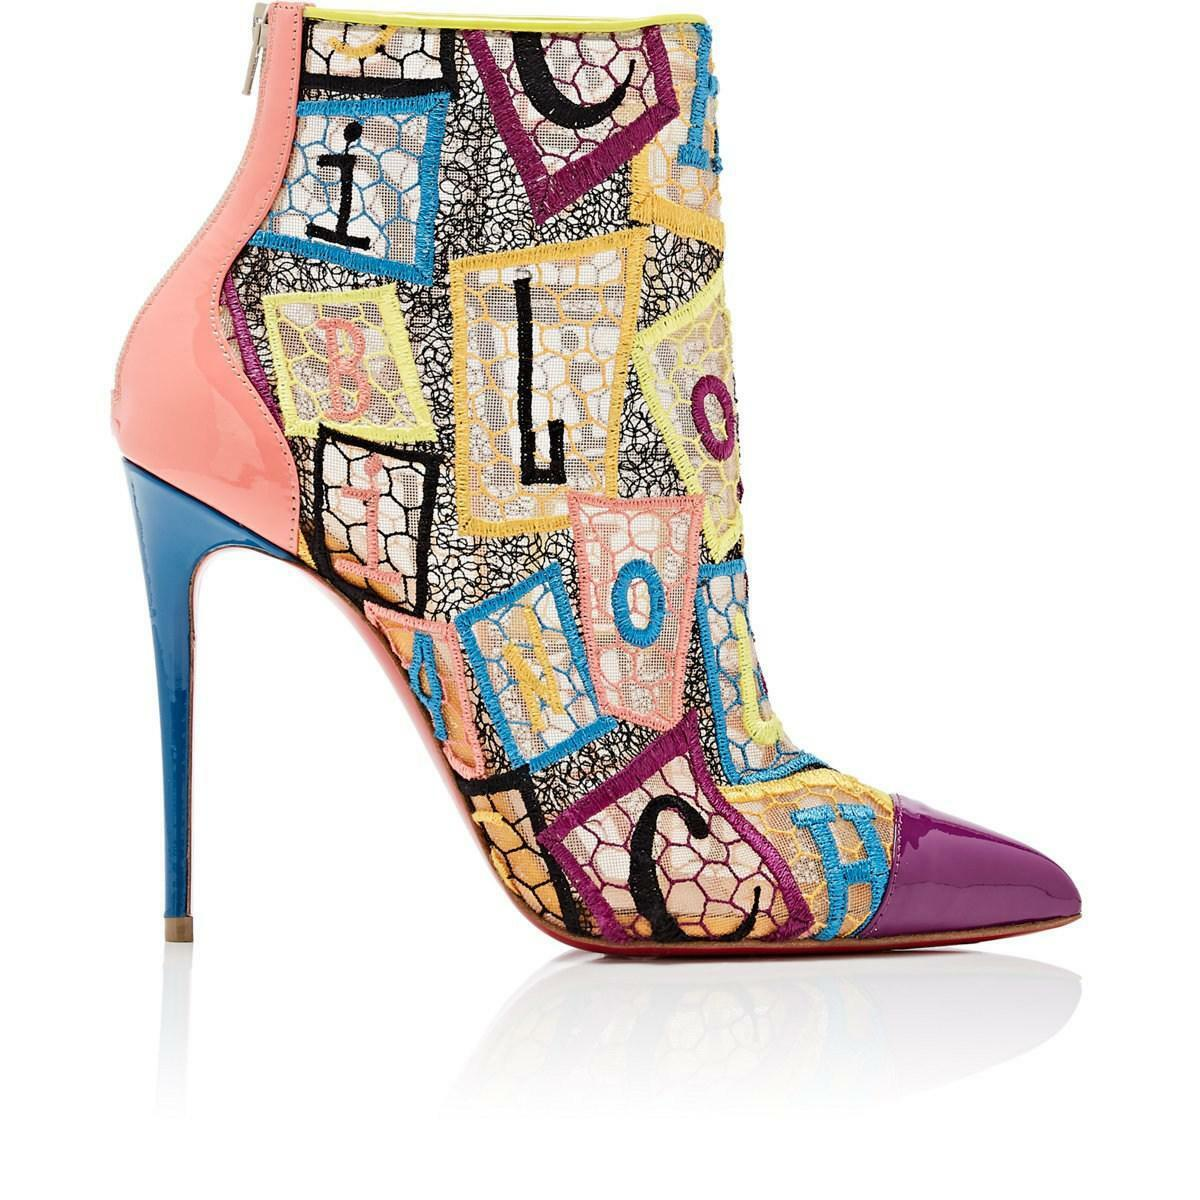 LOUBOUTIN GIPSYBOOTIE GIPSYBOOTIE GIPSYBOOTIE 100 MULTICOLOR EMBROIDERED NET ANKLE ZIP BOOTS PUMPS 38 886cd2